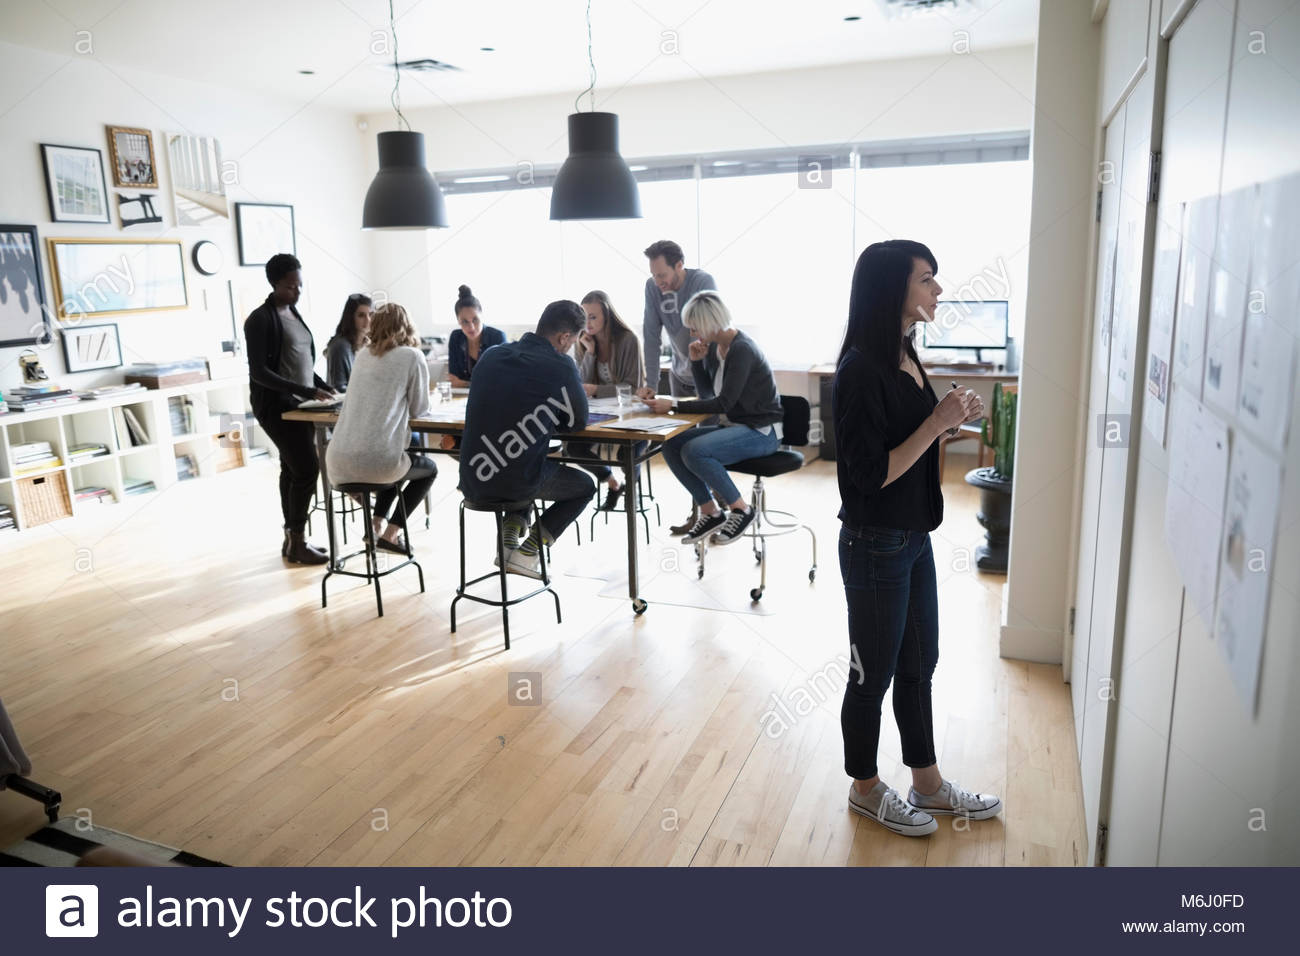 Female photo editor reviewing photo proofs hanging on office wall - Stock Image